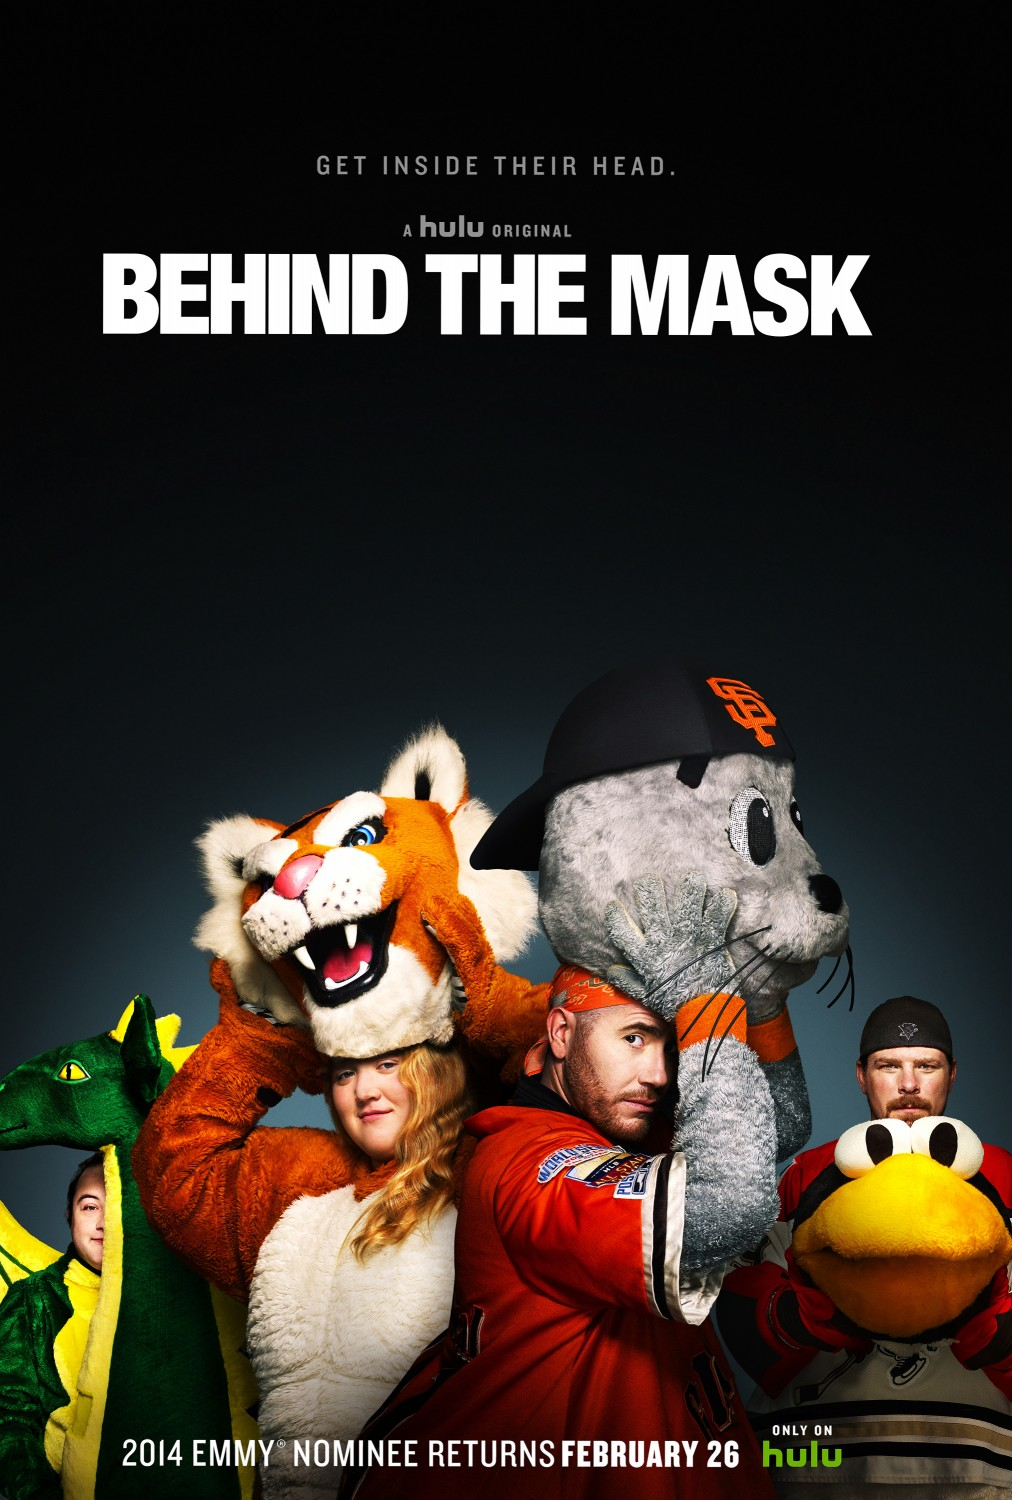 Behind The Mask - Editor